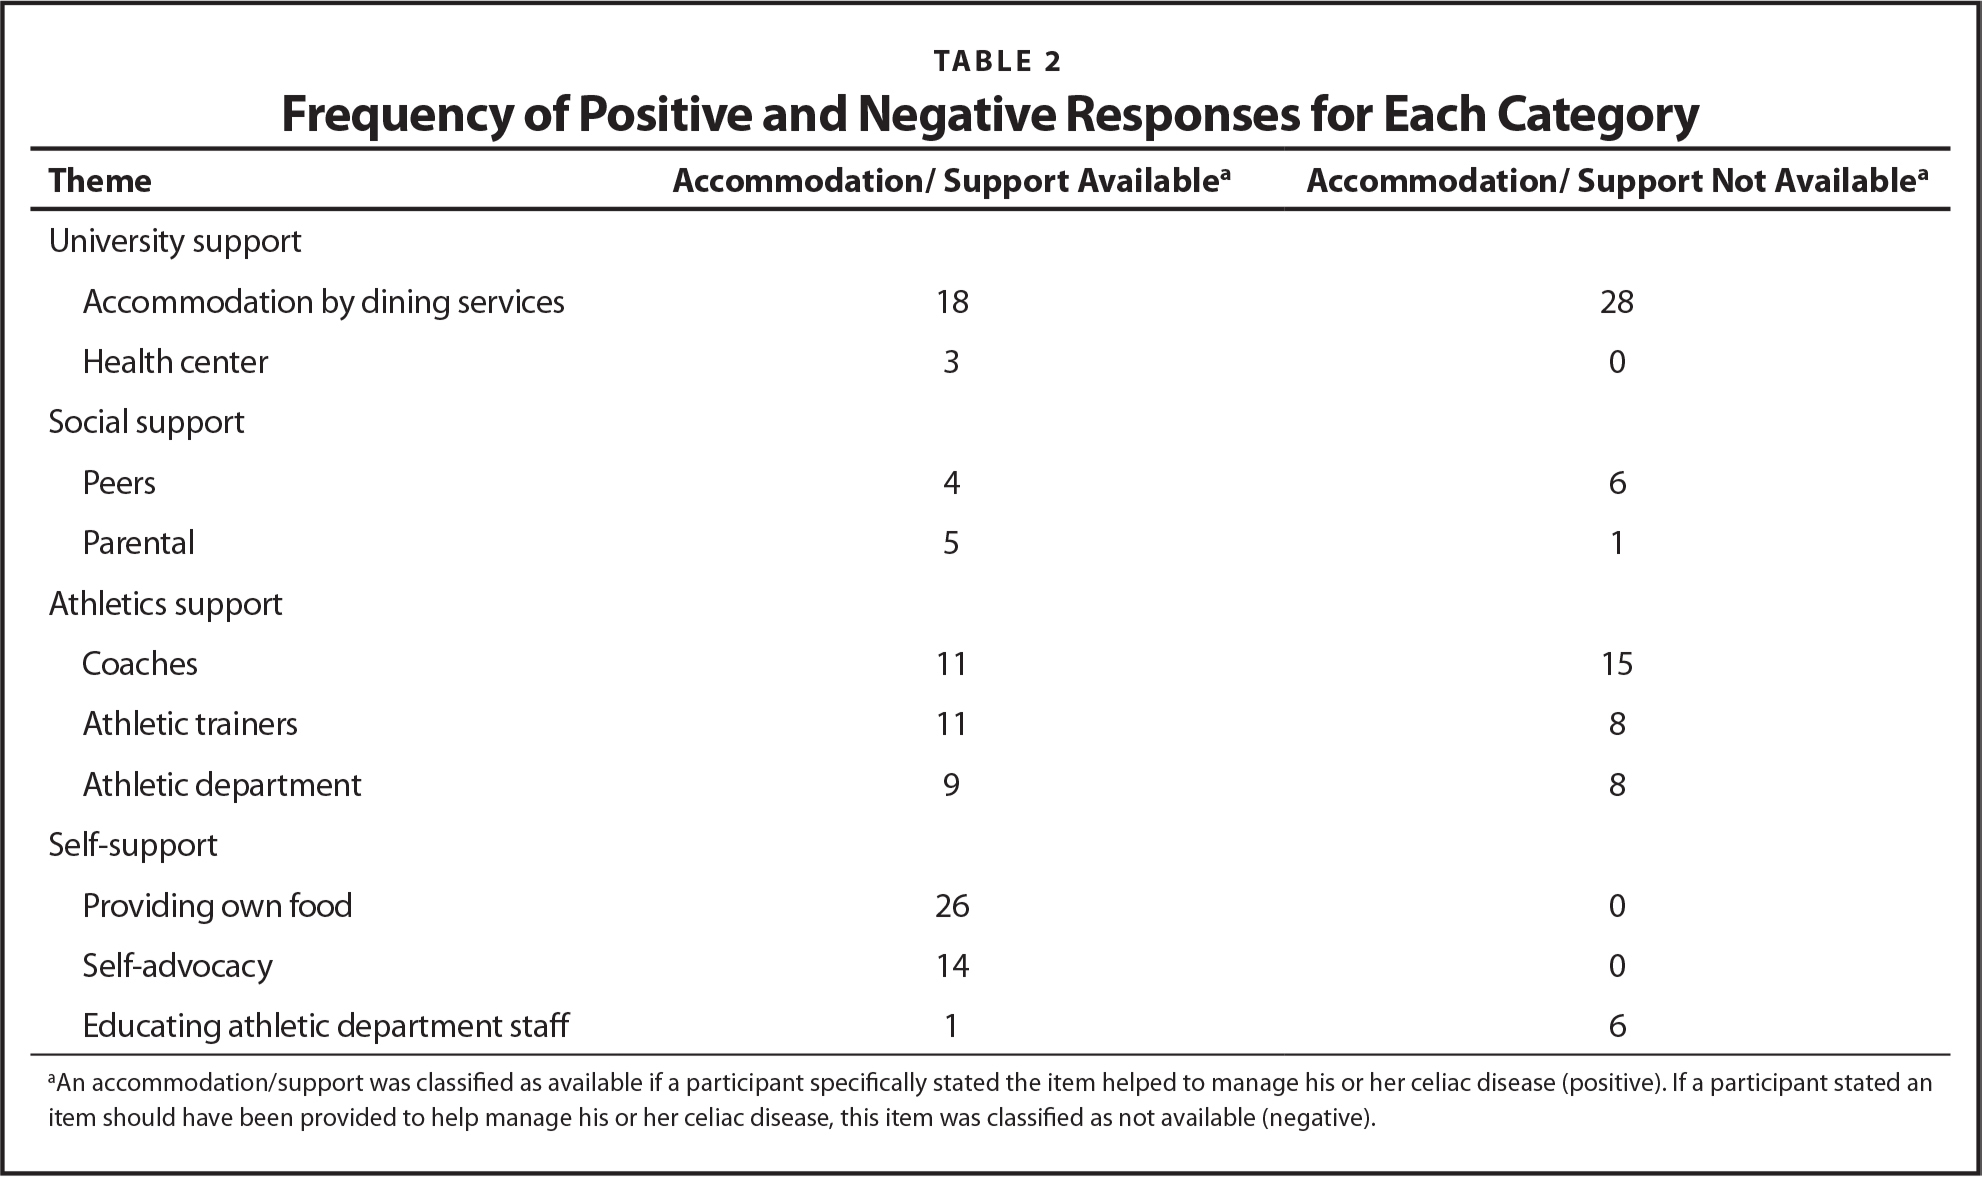 Frequency of Positive and Negative Responses for Each Category